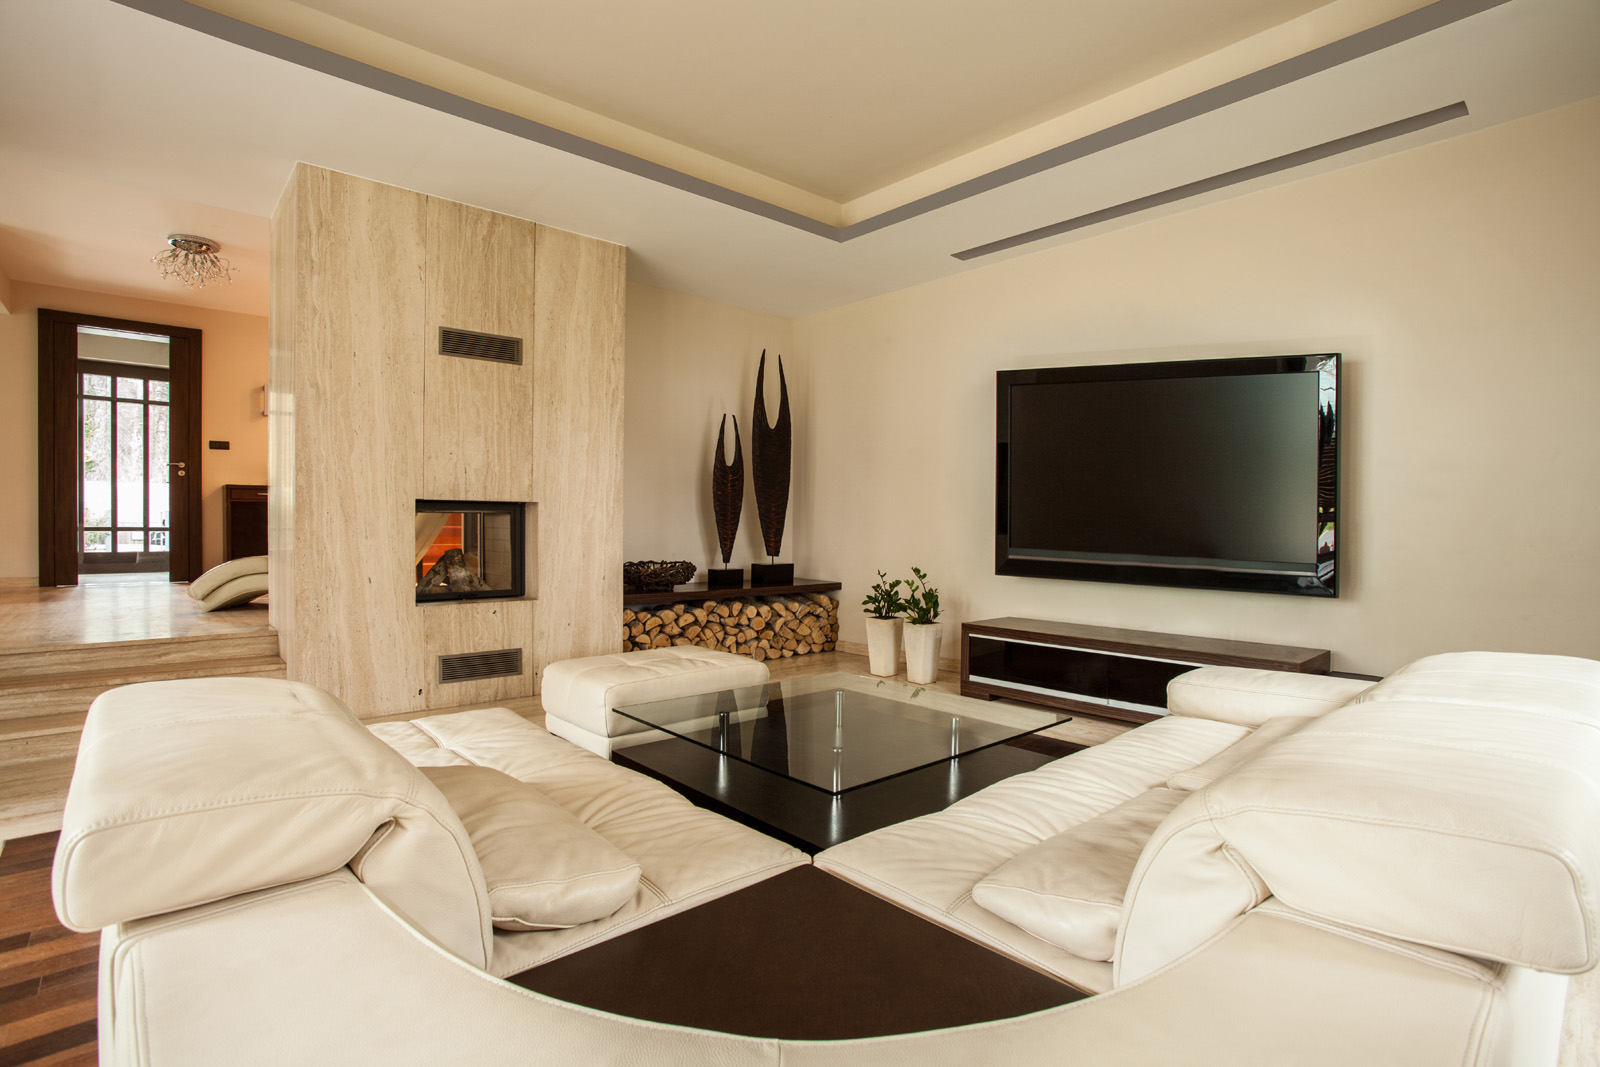 Living room with sofa, coffee table and TV 51224